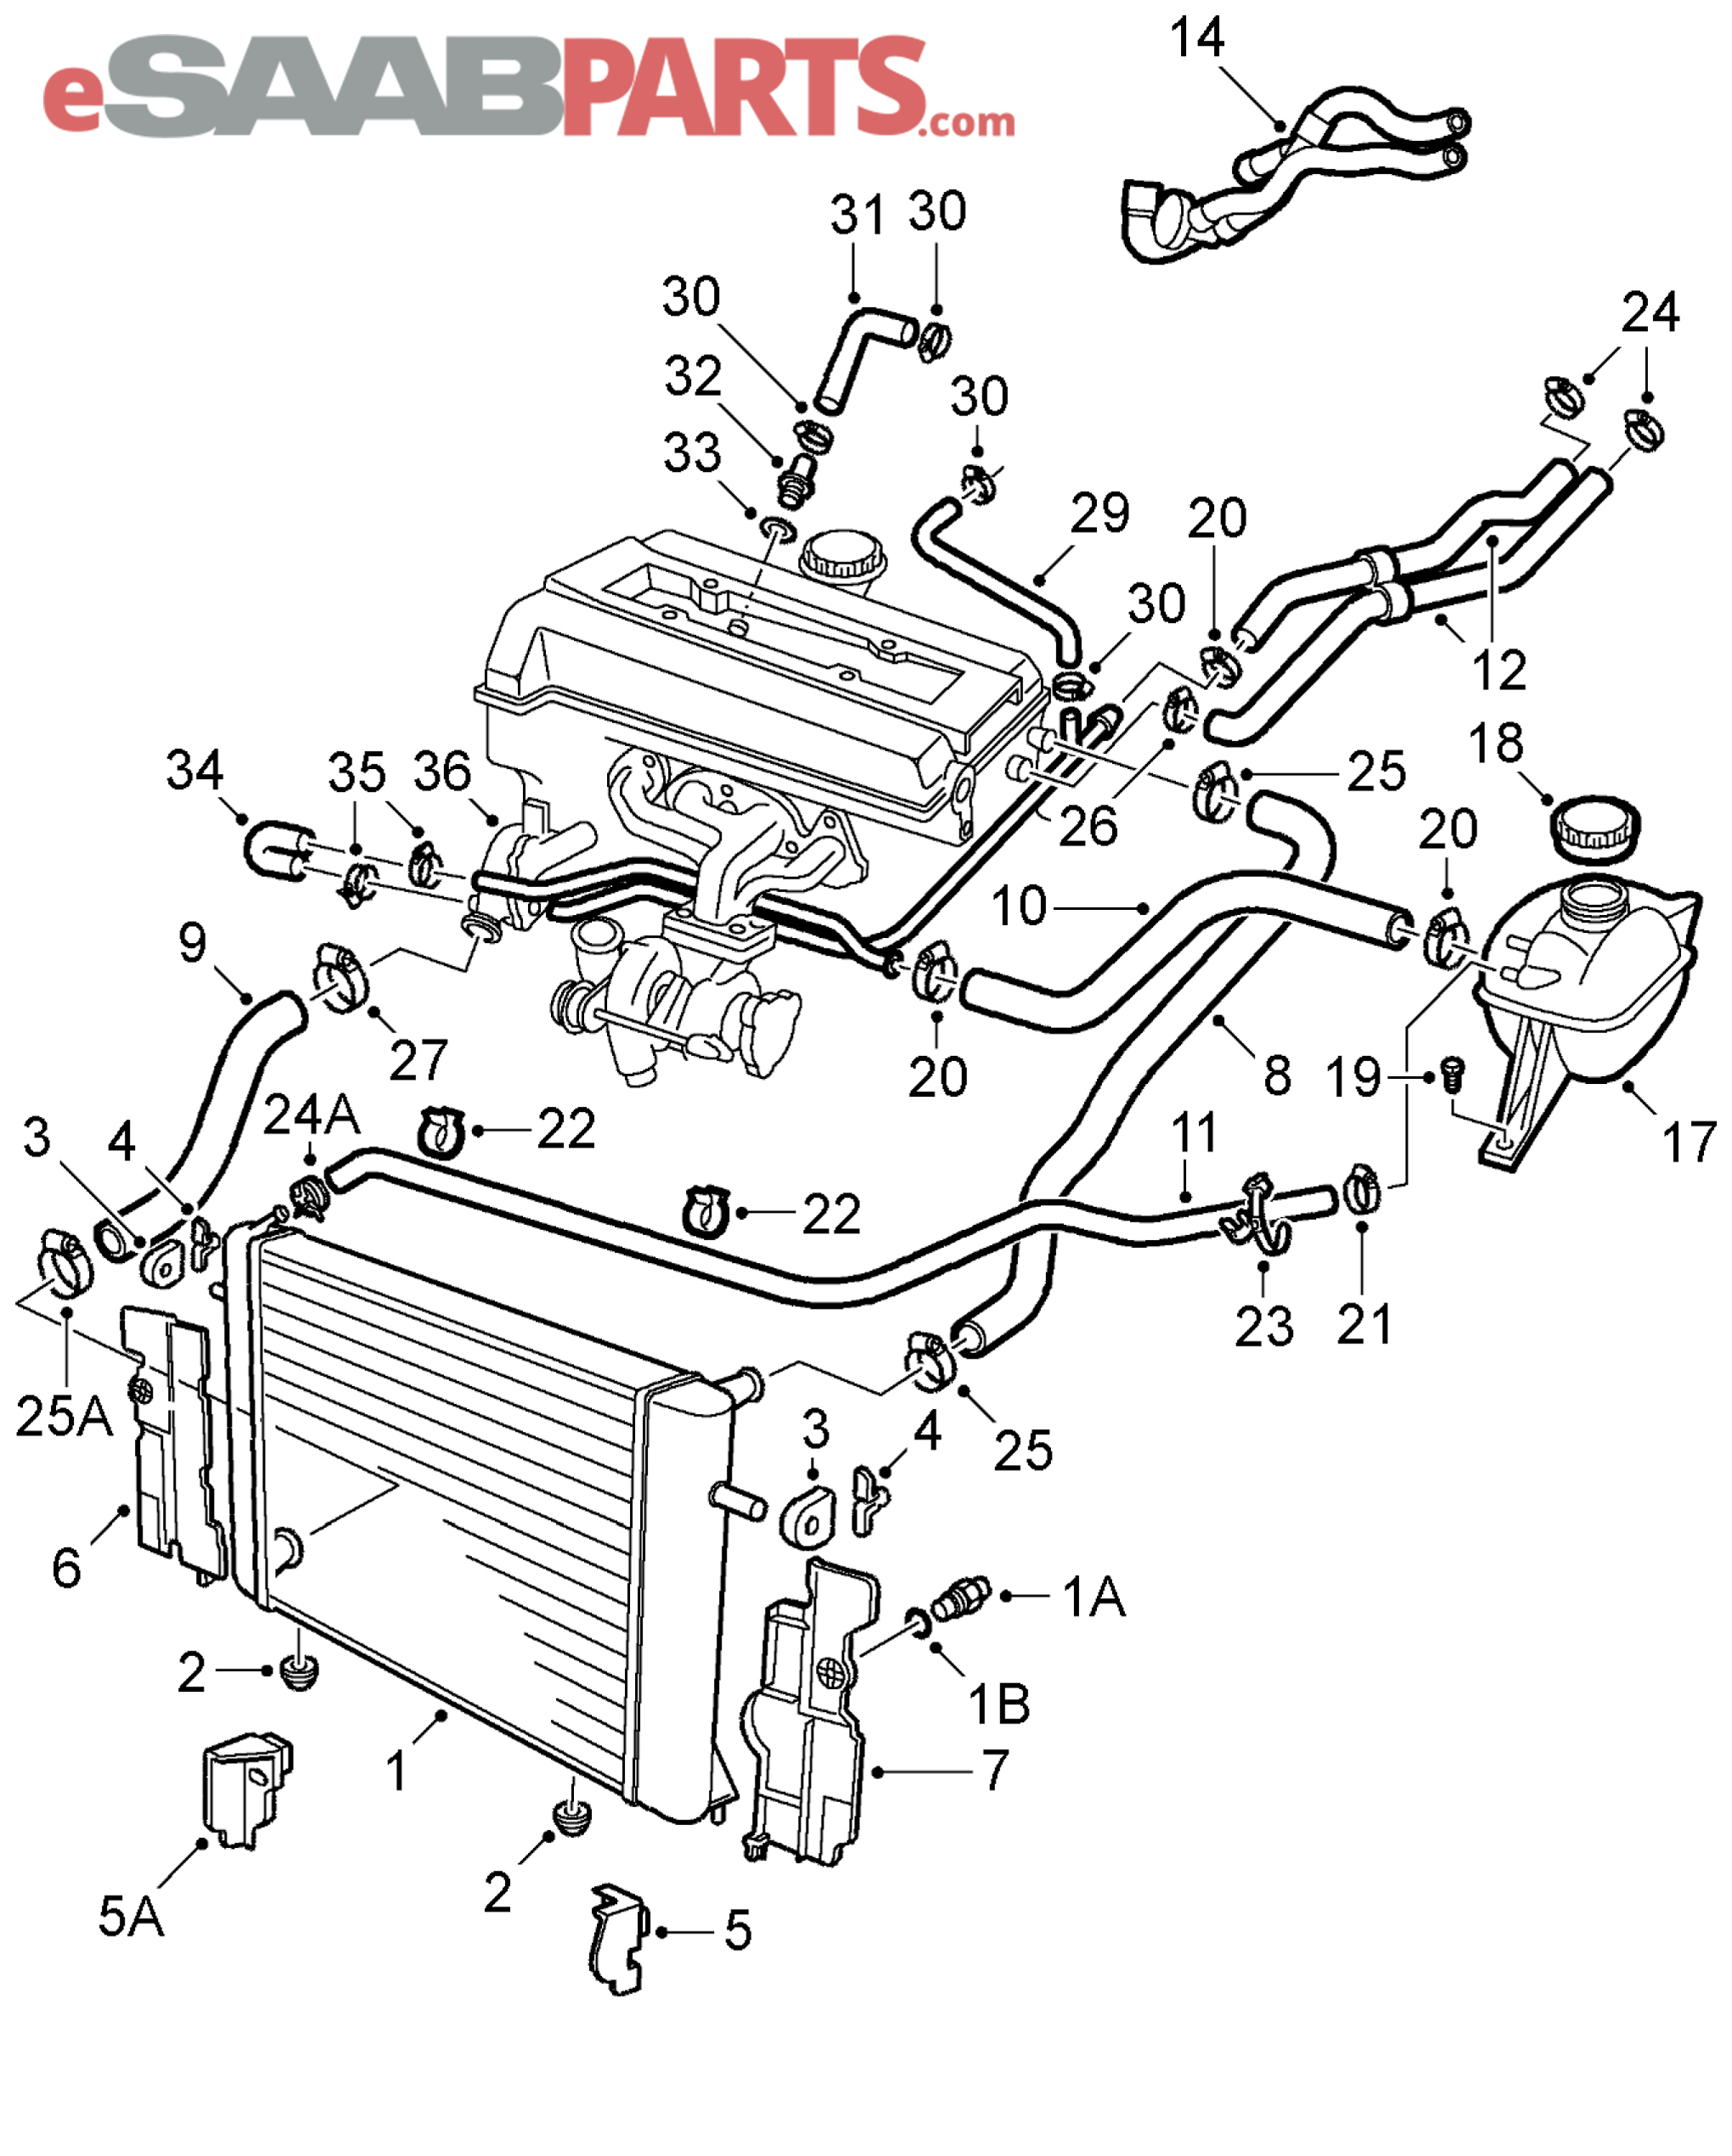 on Saab 9 5 Engine Diagram